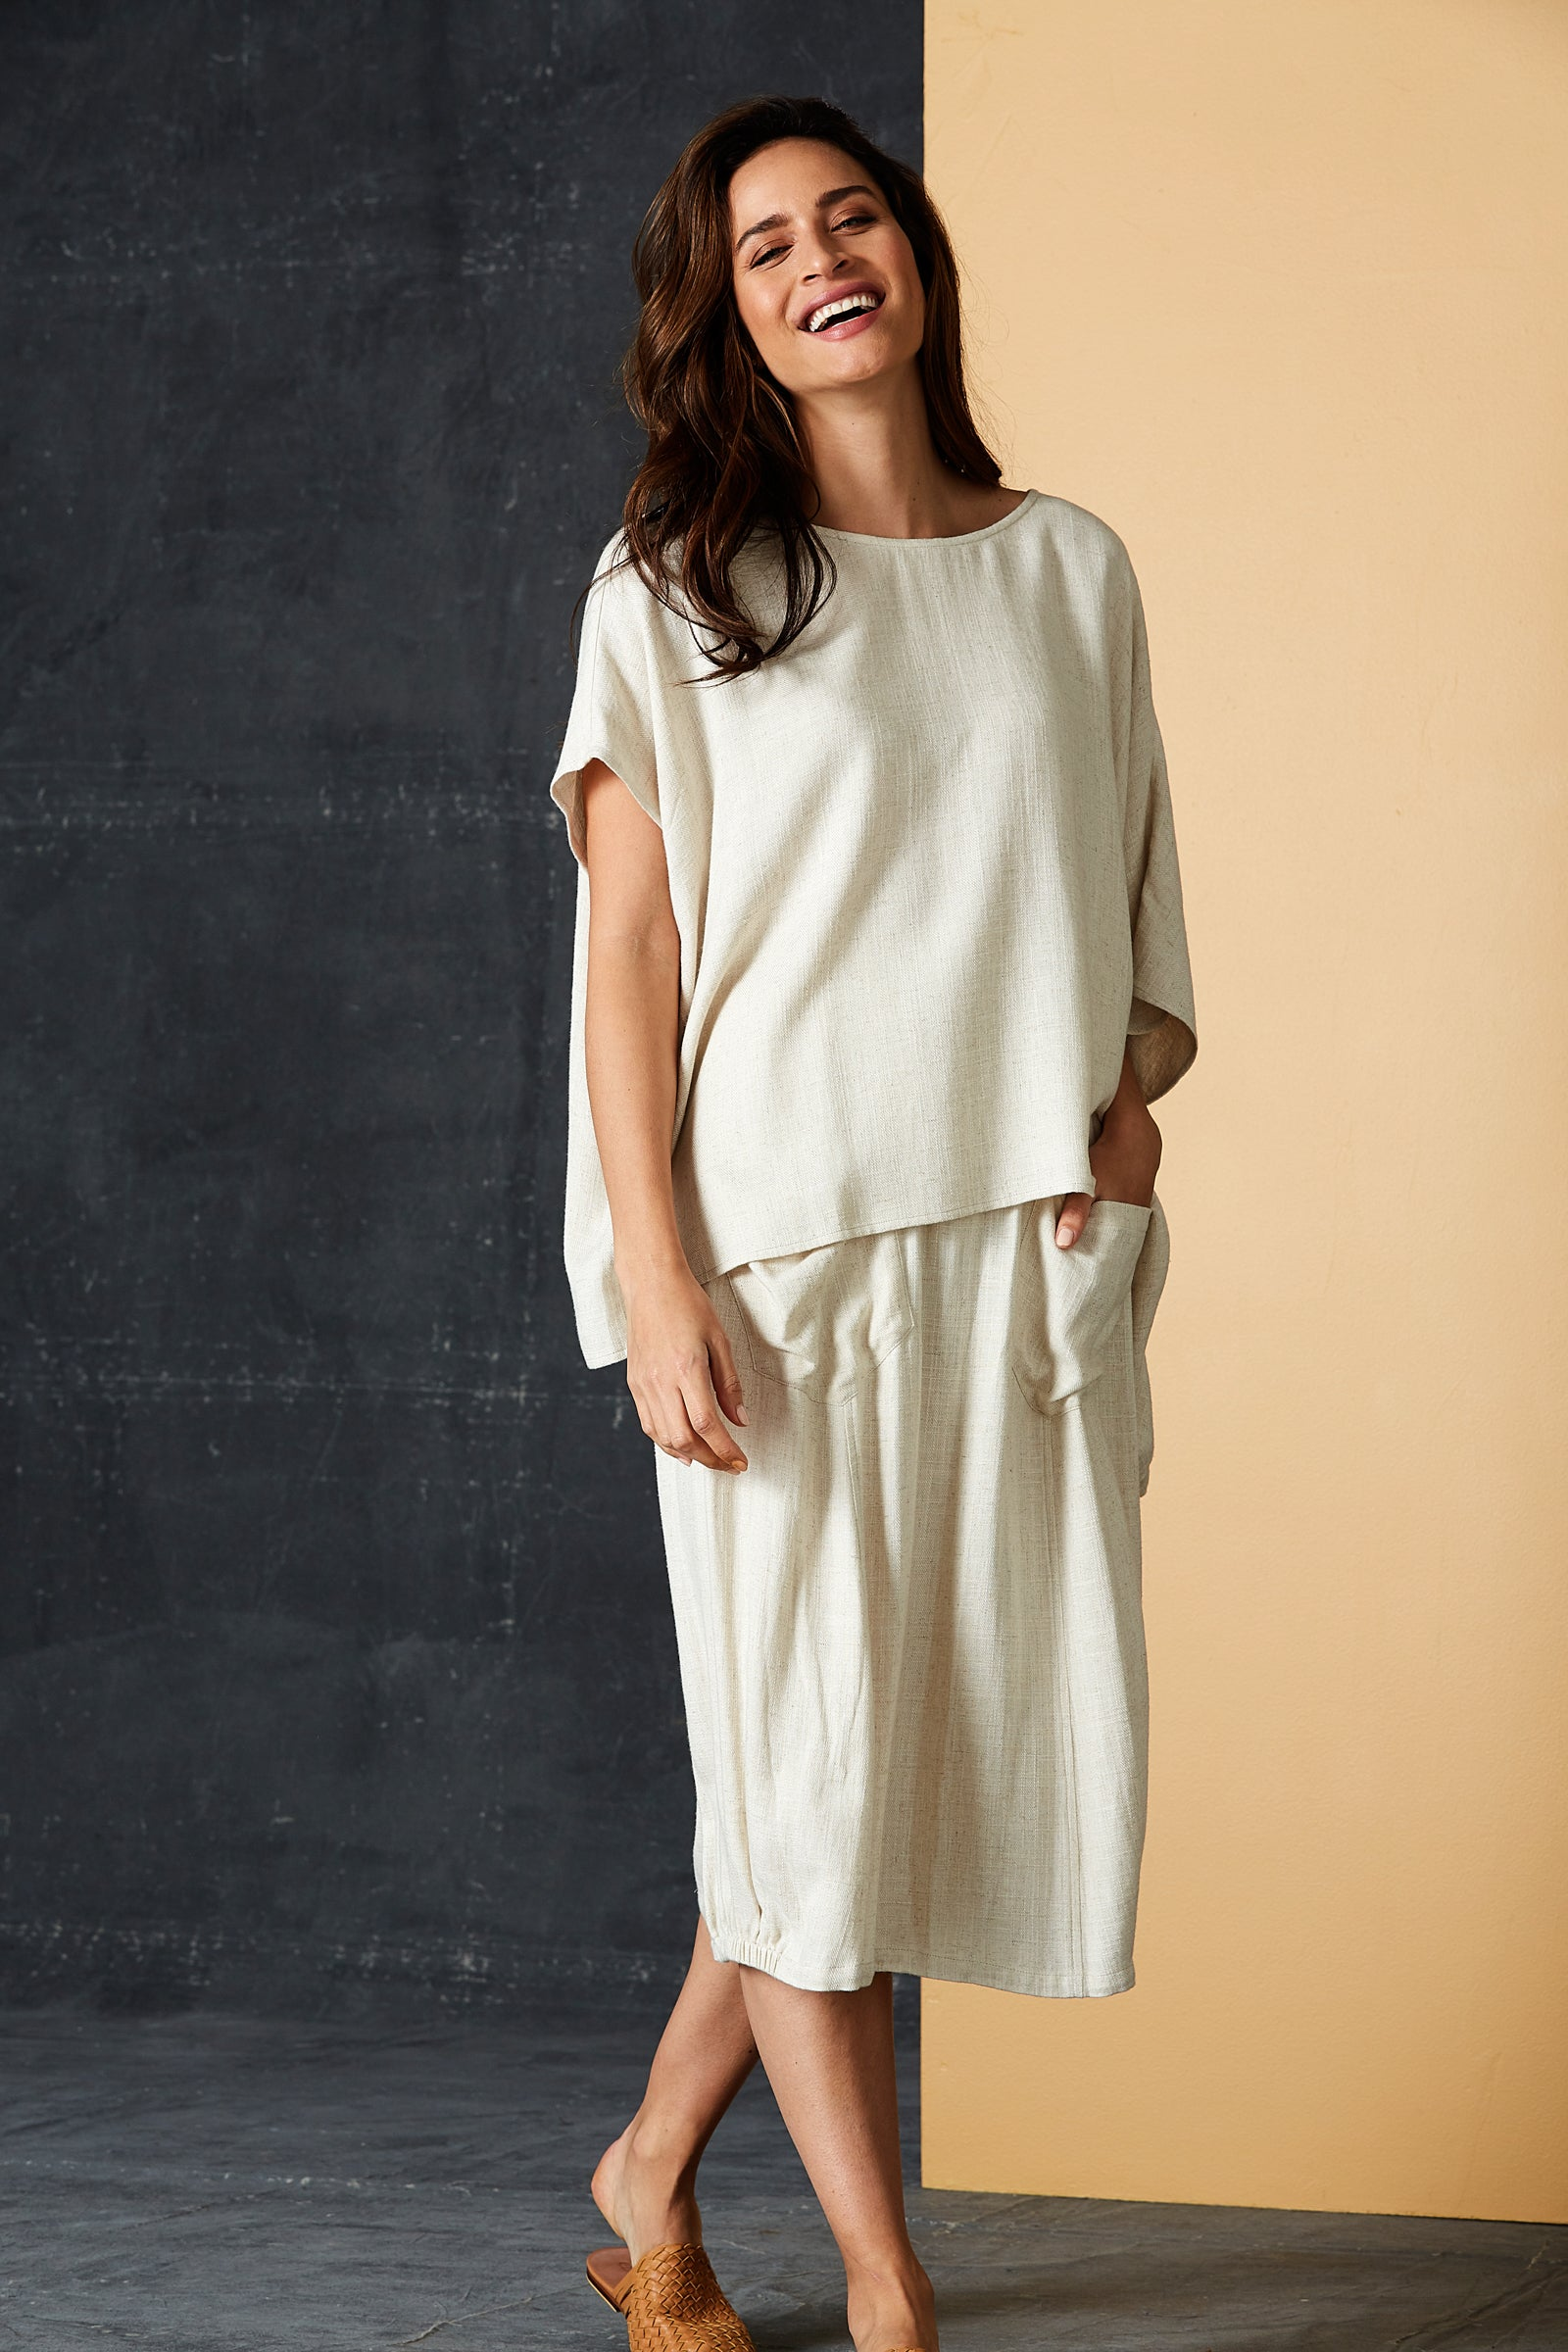 Calma Top - Wheat - eb&ive Clothing - Top S/S Linen One Size